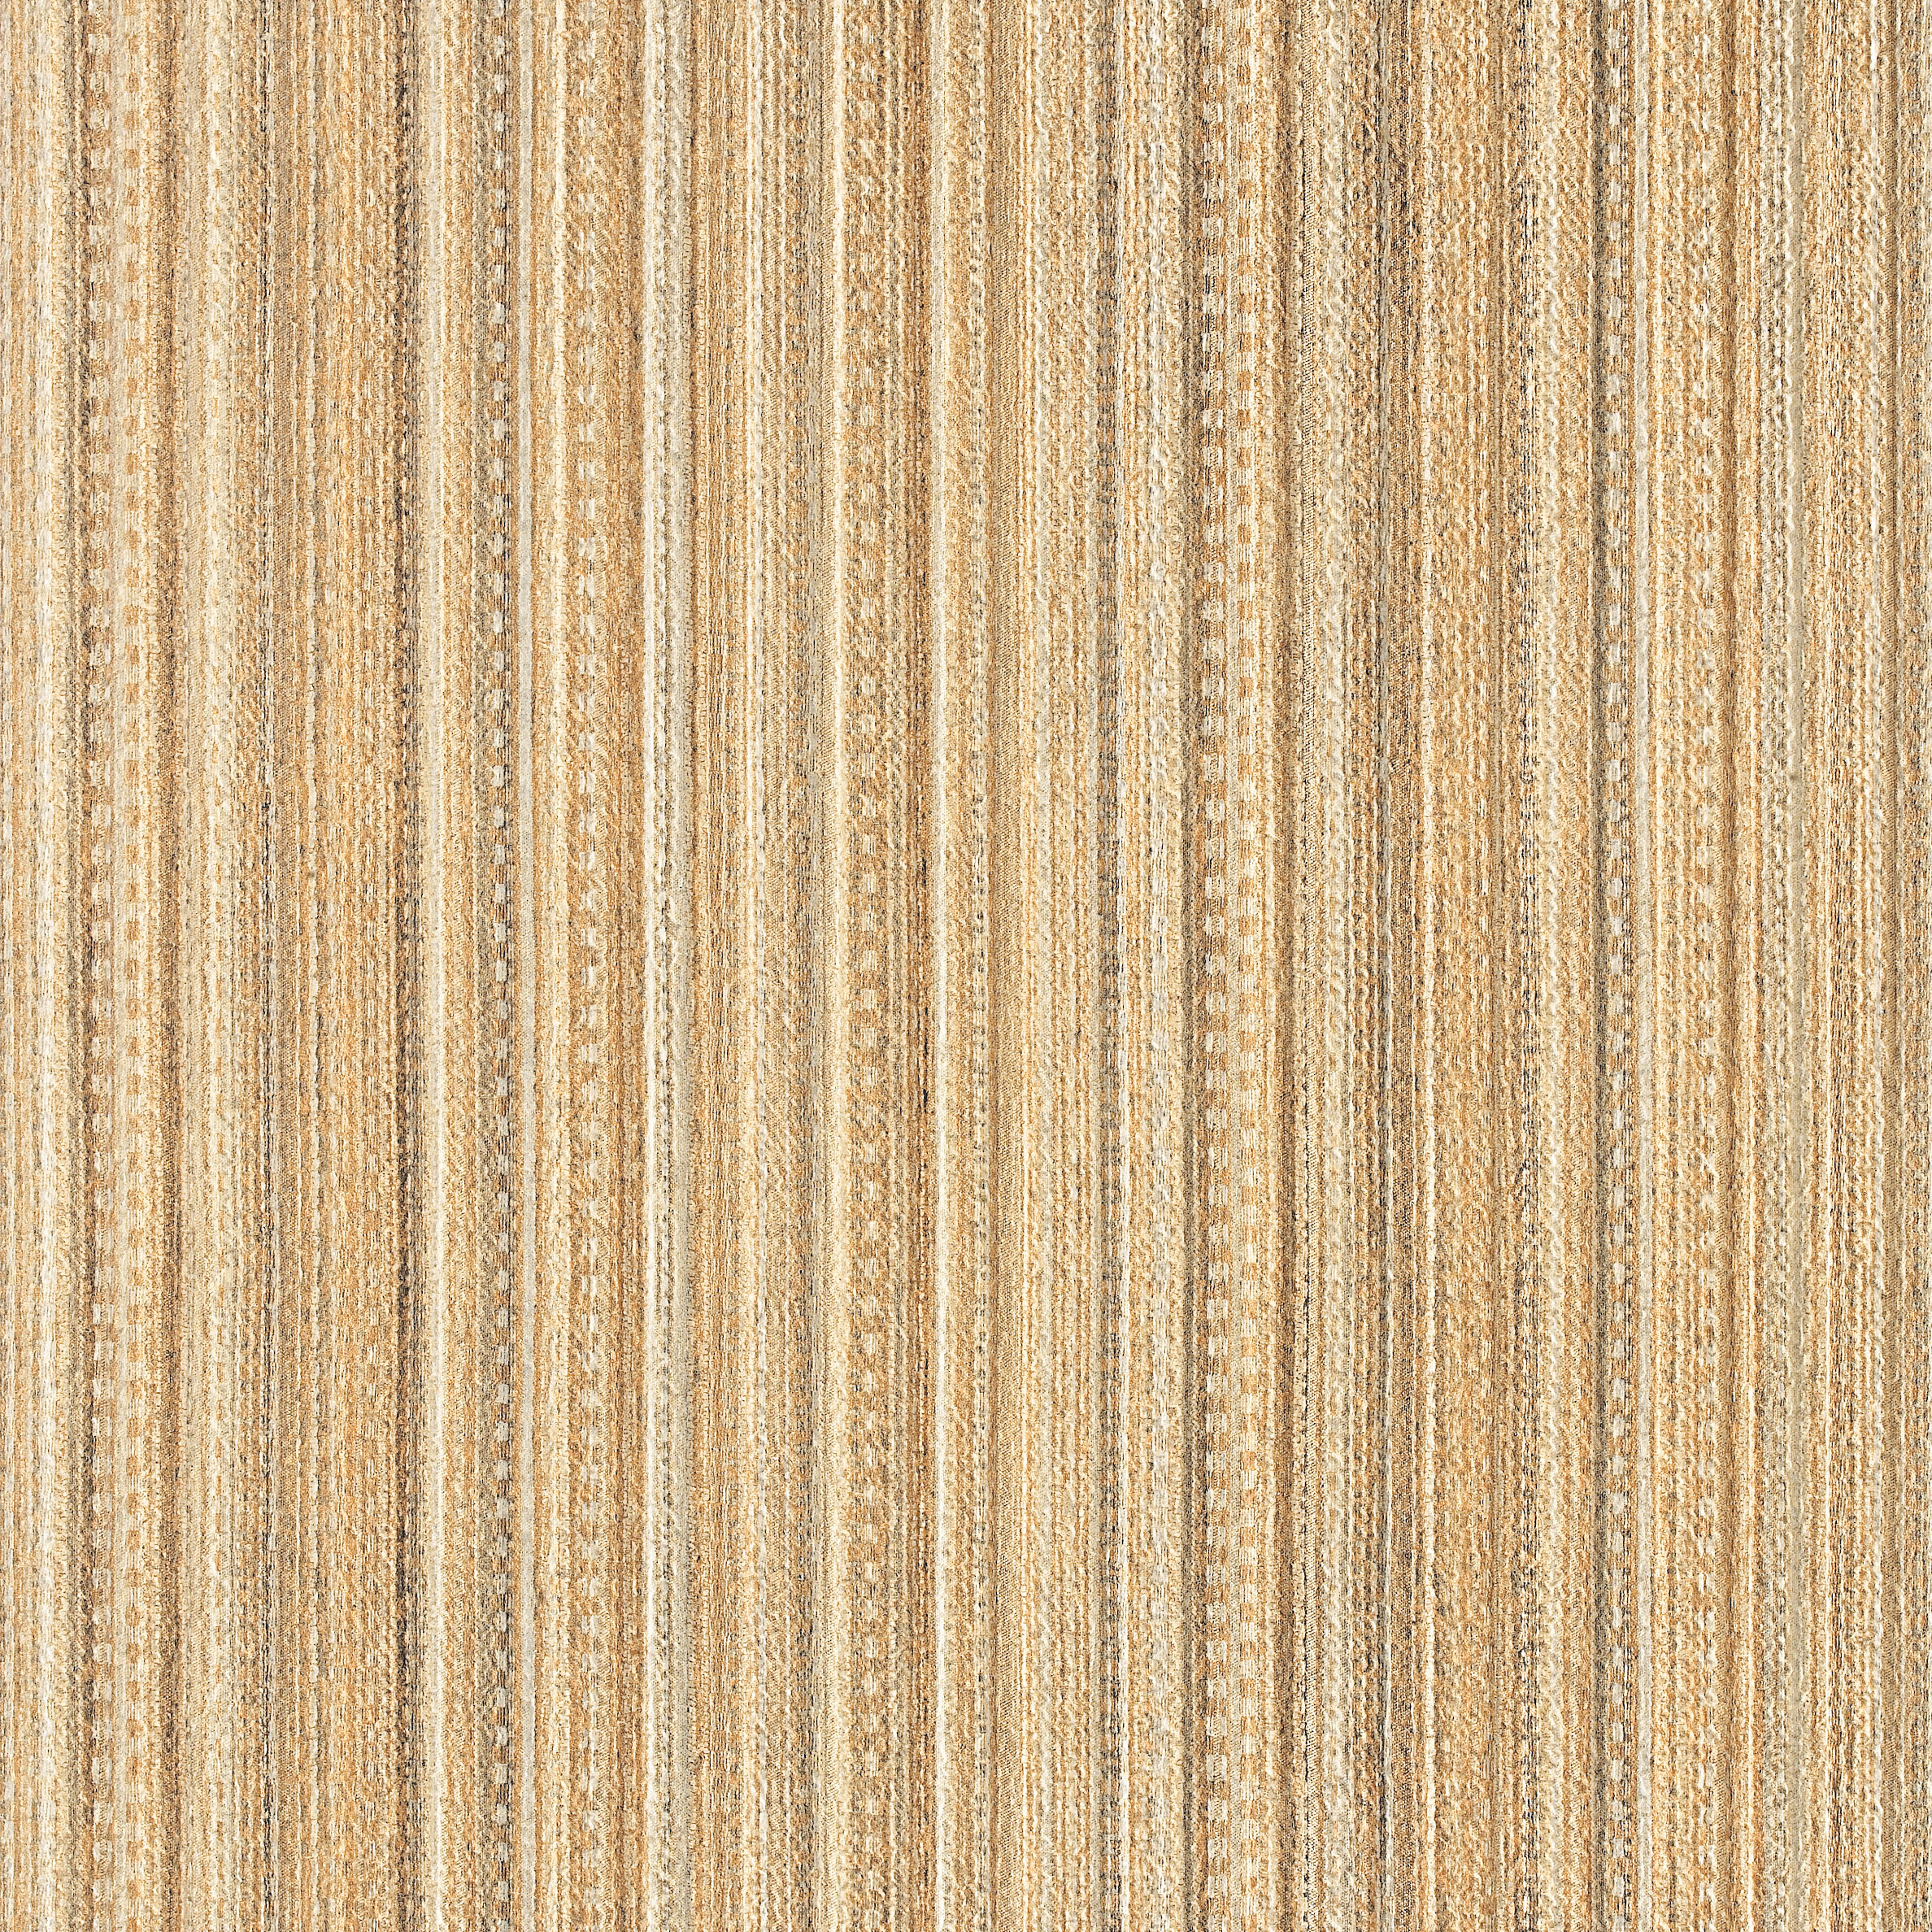 Porcelain Tile   Carpet Series - HSLCT66313   by Hospitality Finishes